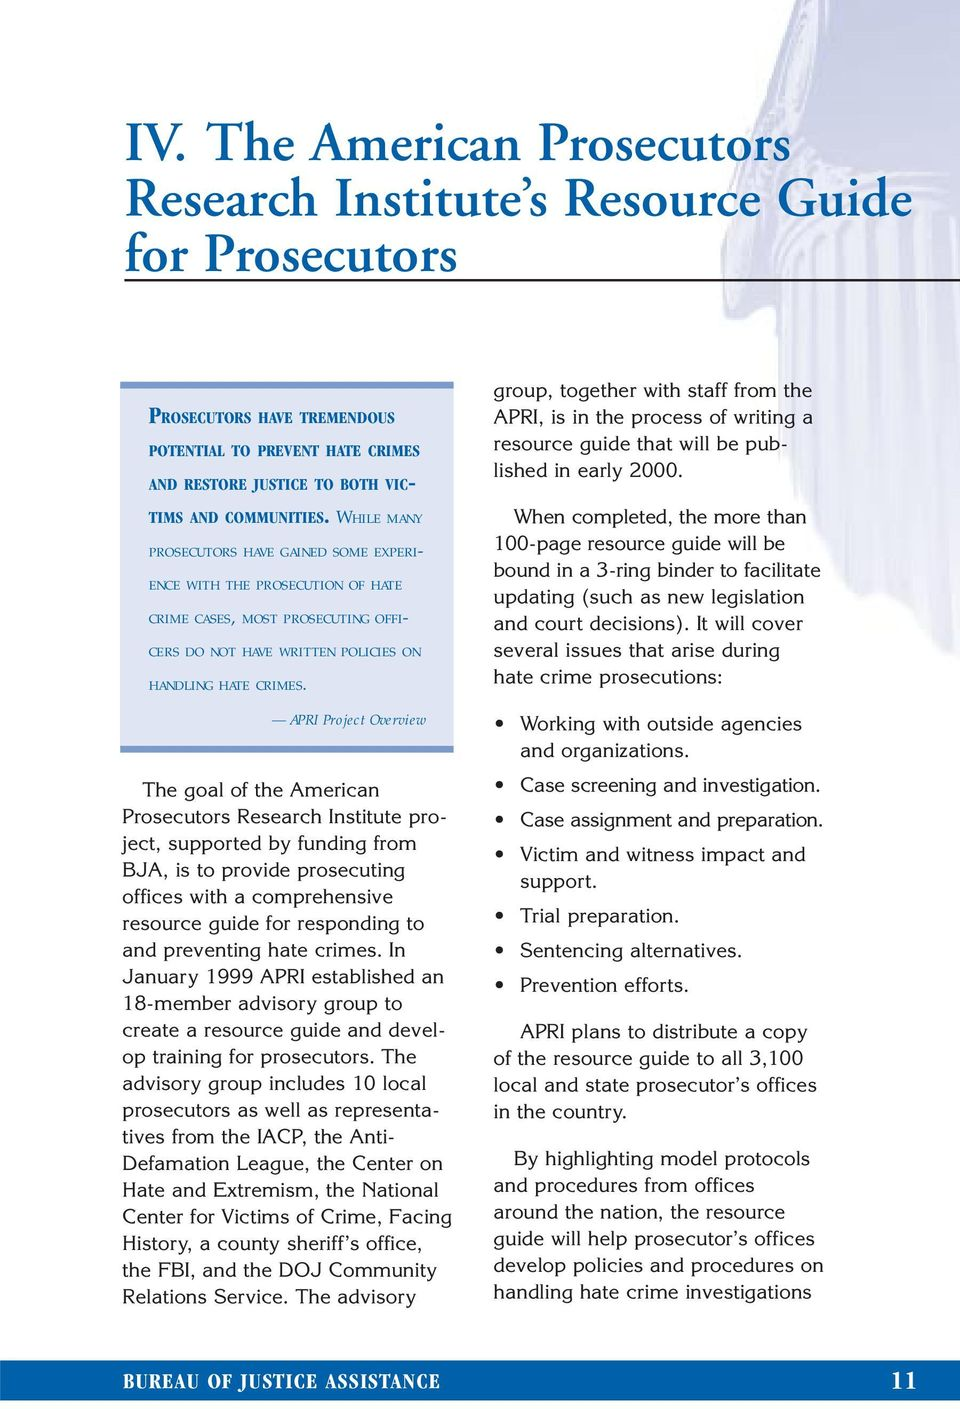 APRI Project Overview The goal of the American Prosecutors Research Institute project, supported by funding from BJA, is to provide prosecuting offices with a comprehensive resource guide for